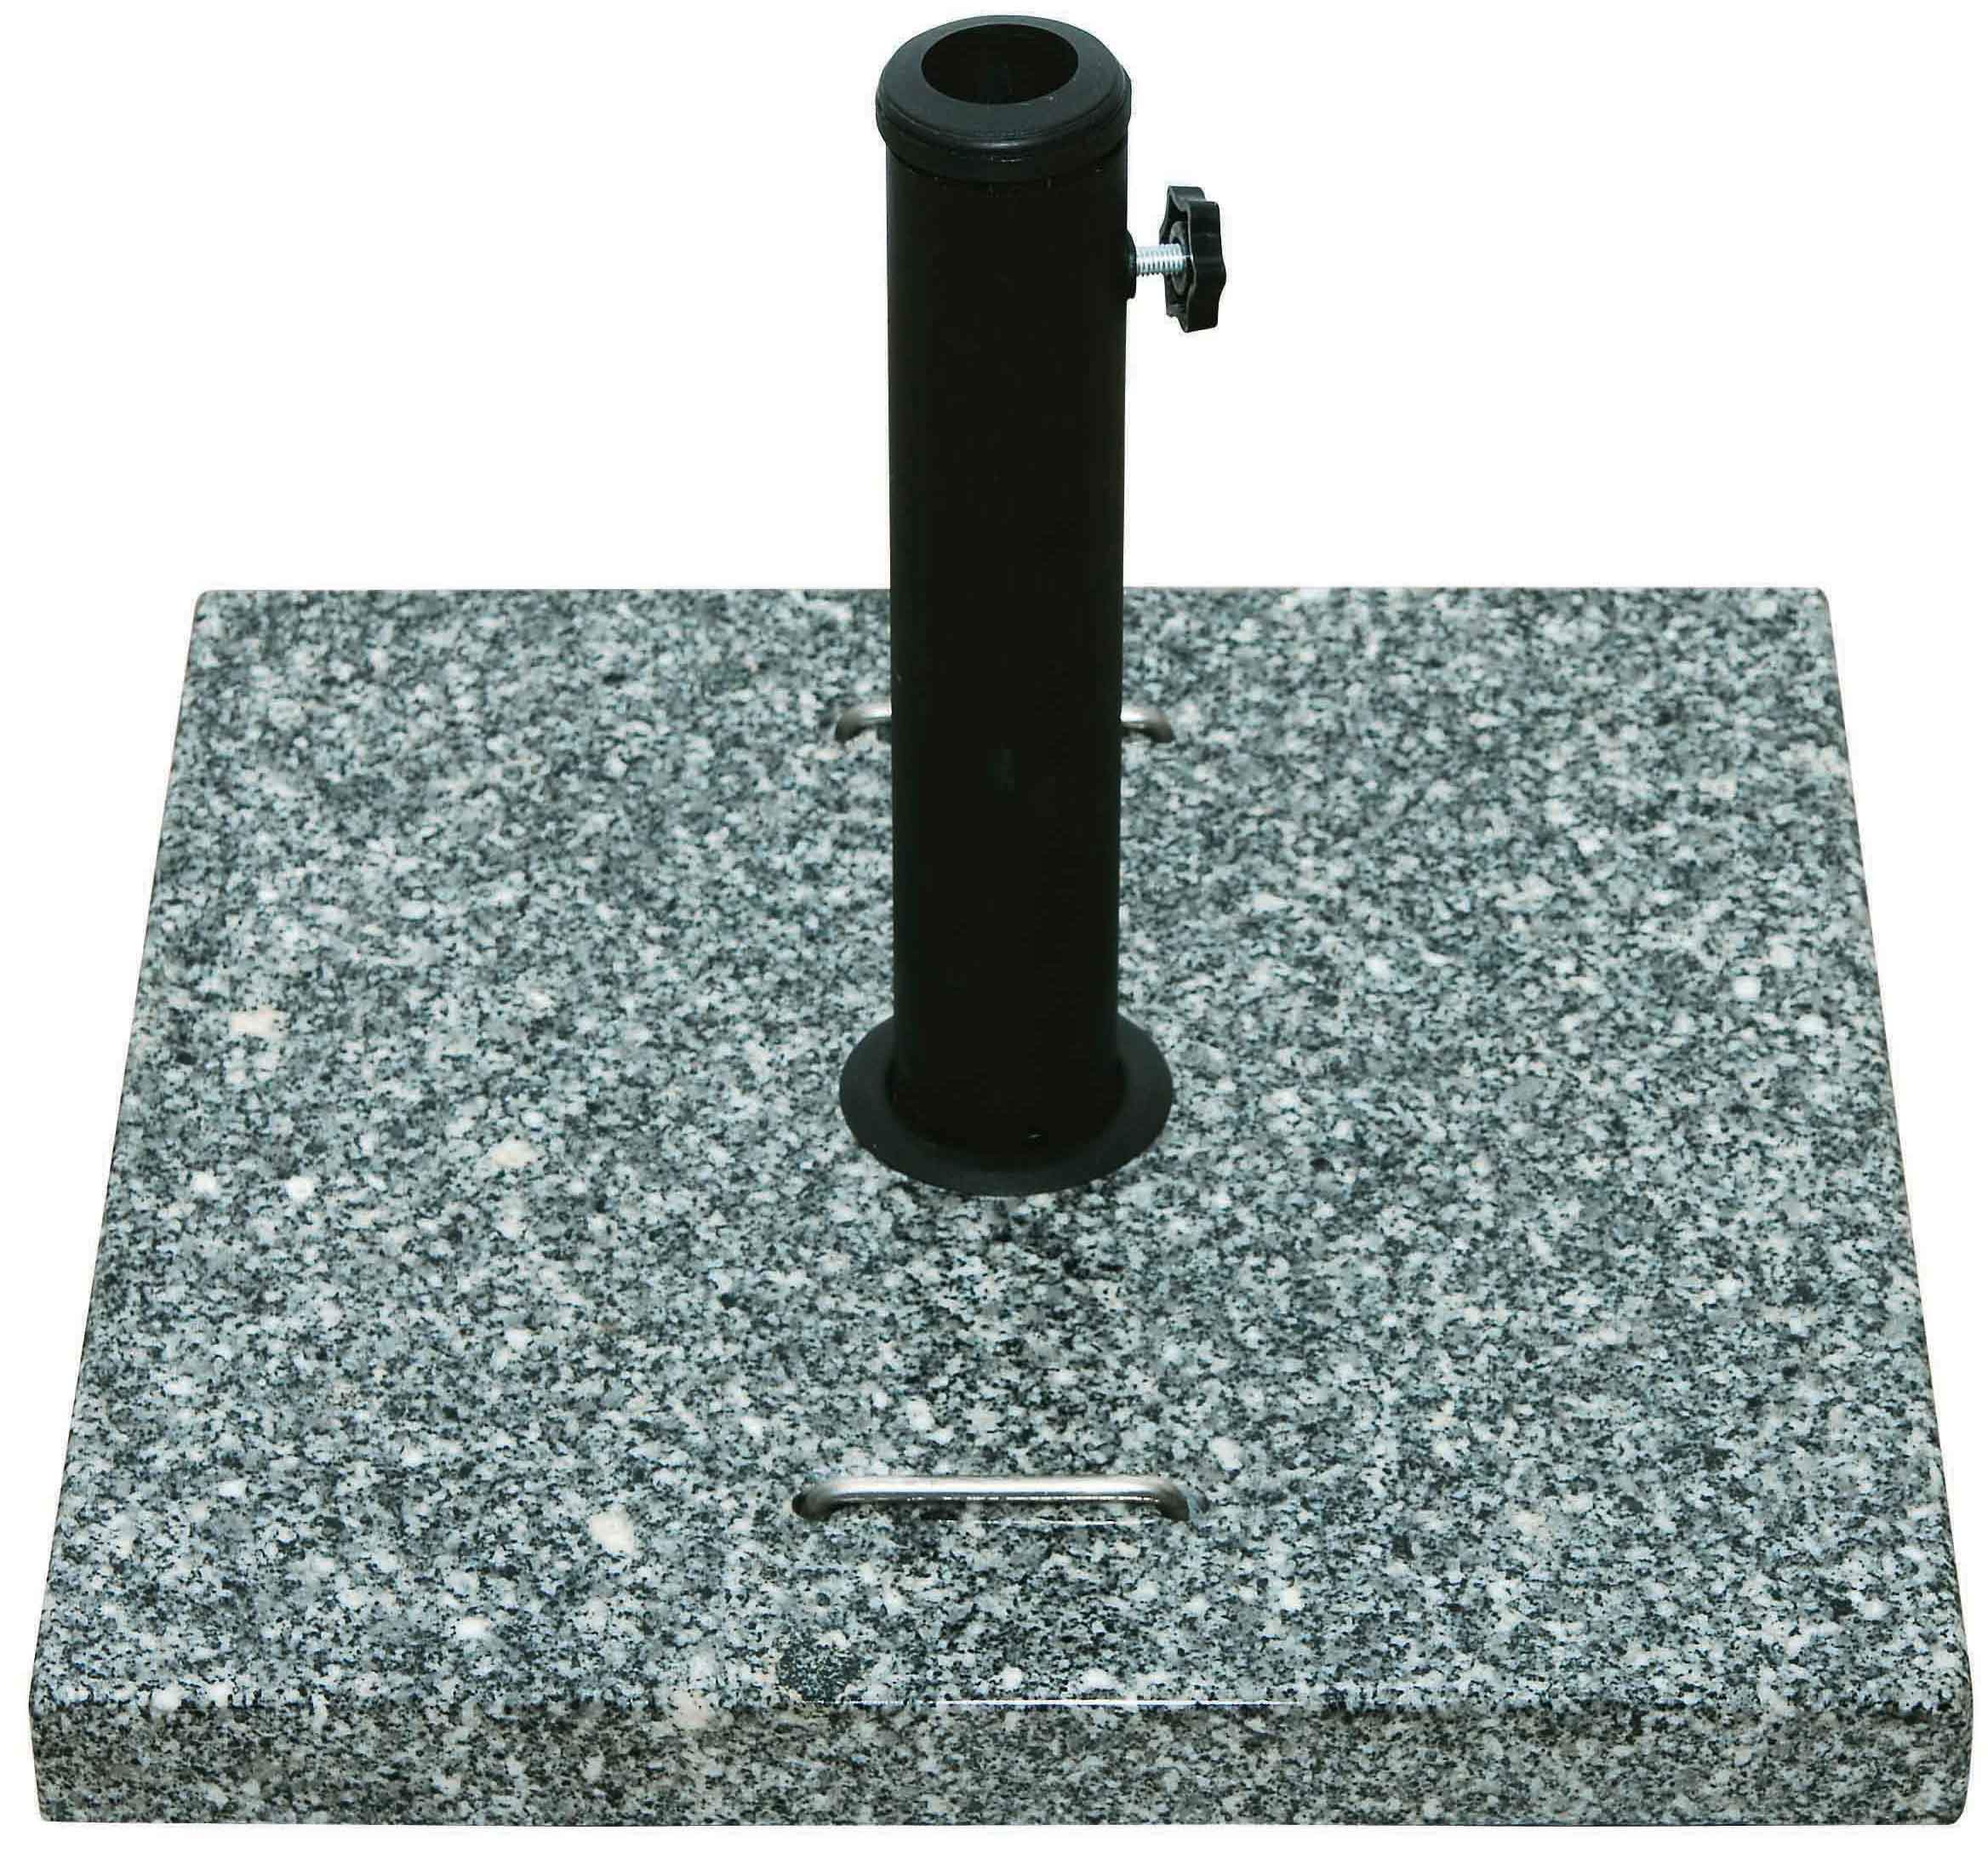 GRANITE UMBRELLA BASE SQUARE 35kg WITH TRANSFER HANDLES